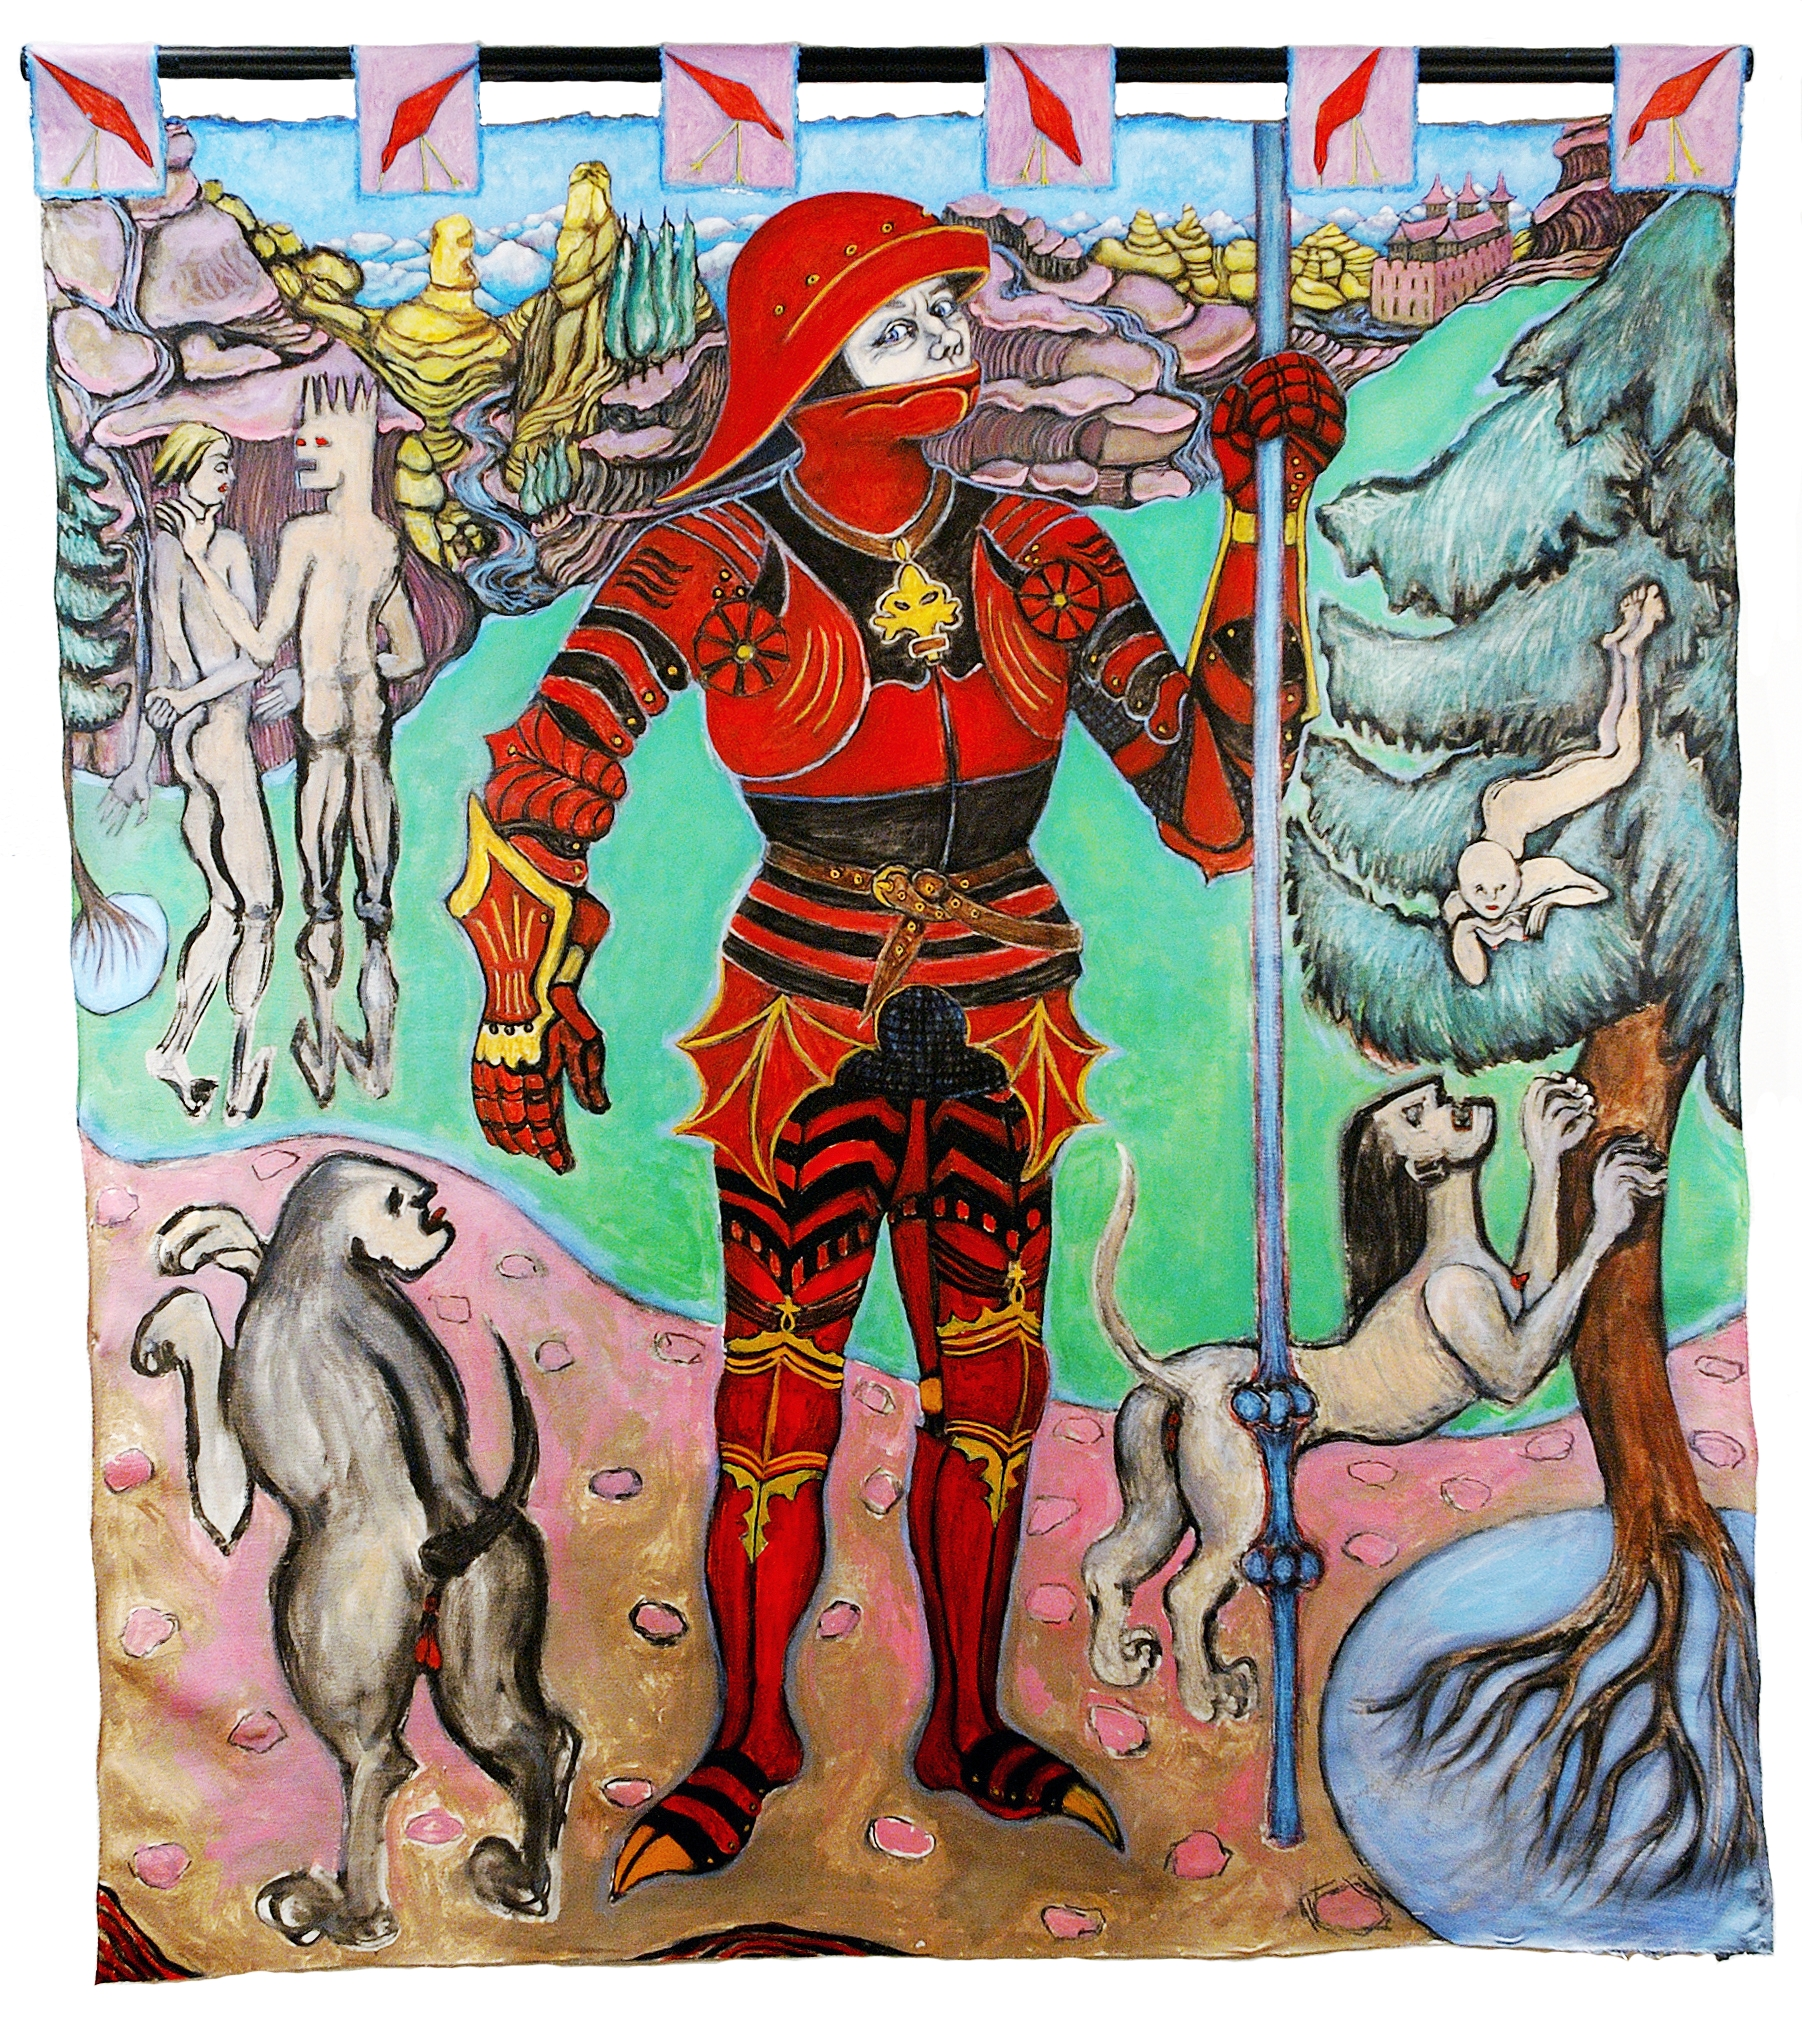 The Painted Knight (El caballero pintado), 5.67 ft x 5.10 ft, 172.82 cm x 155.45 cm, oil on unstretched canvas.